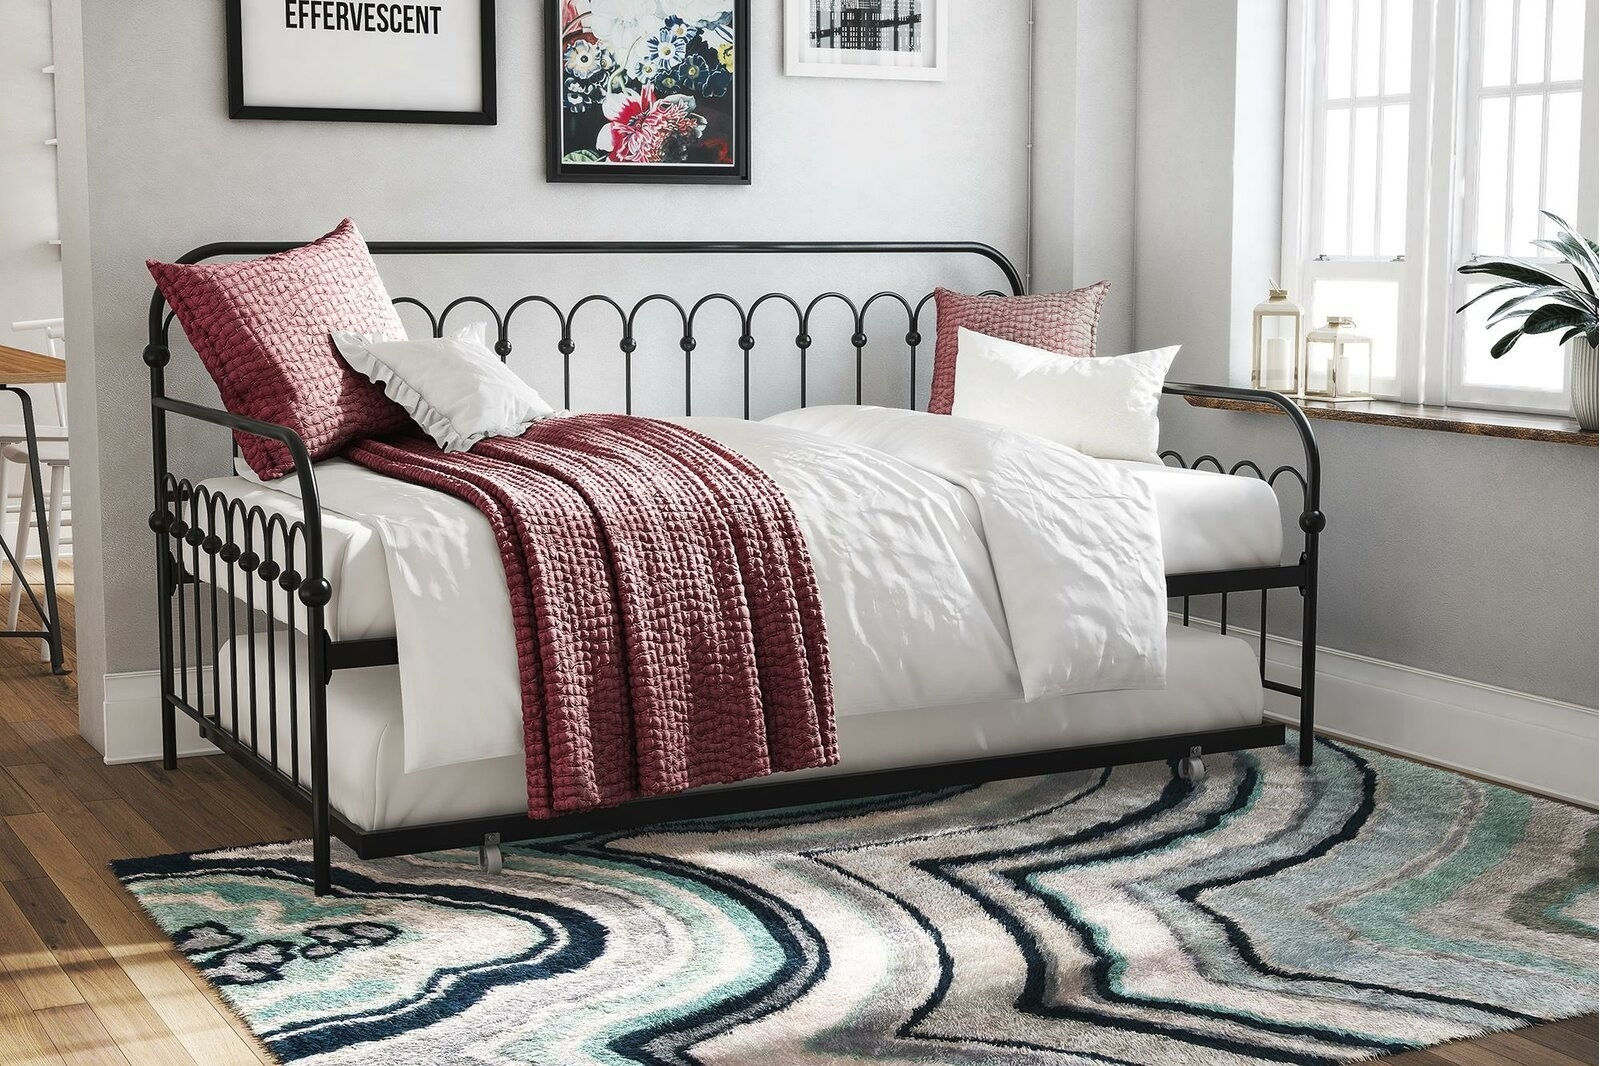 the black daybed which has a trundle